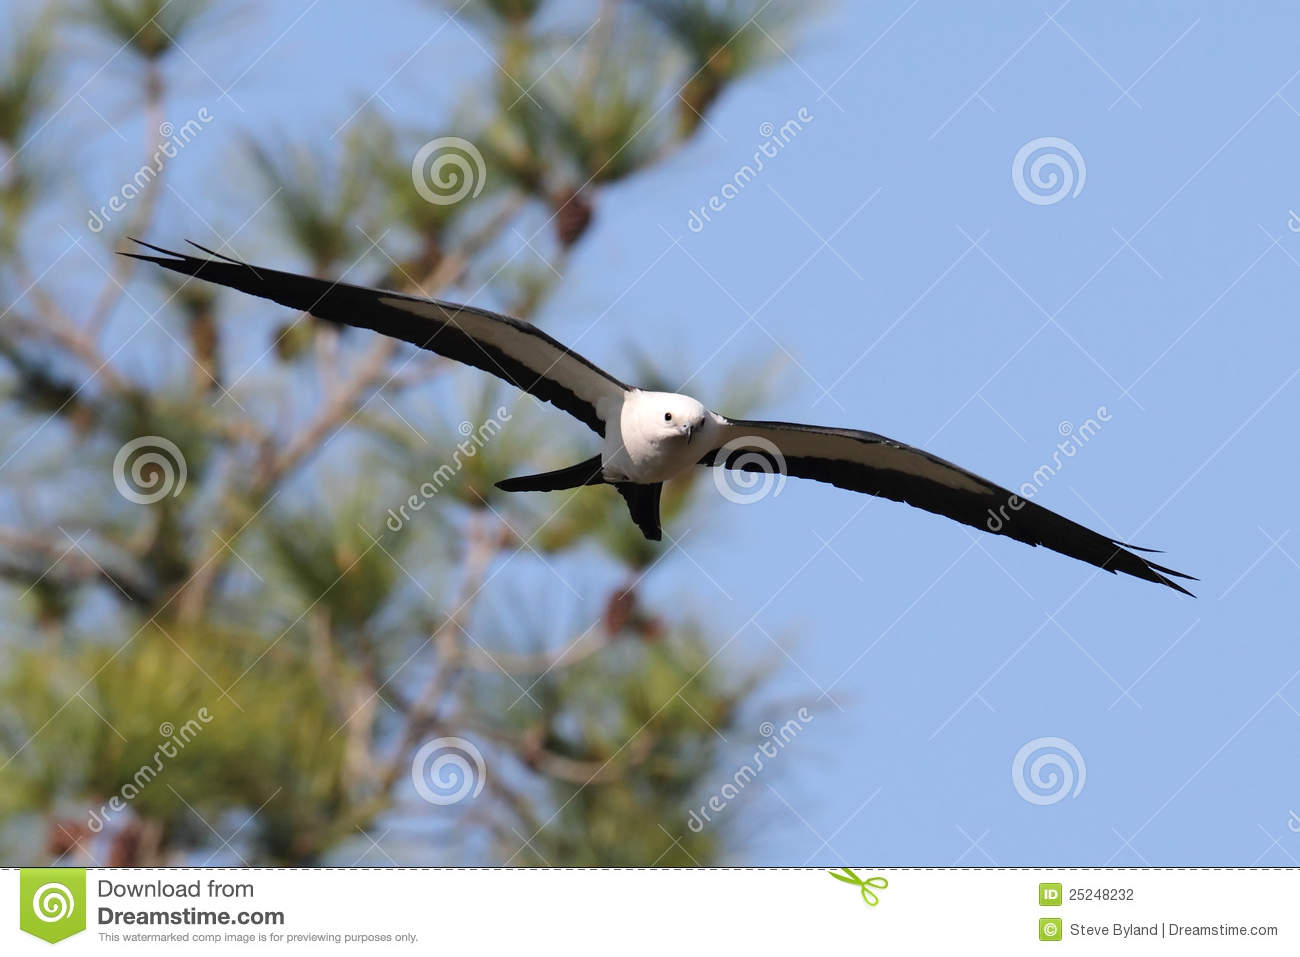 Cerf-volant Swallow-tailed